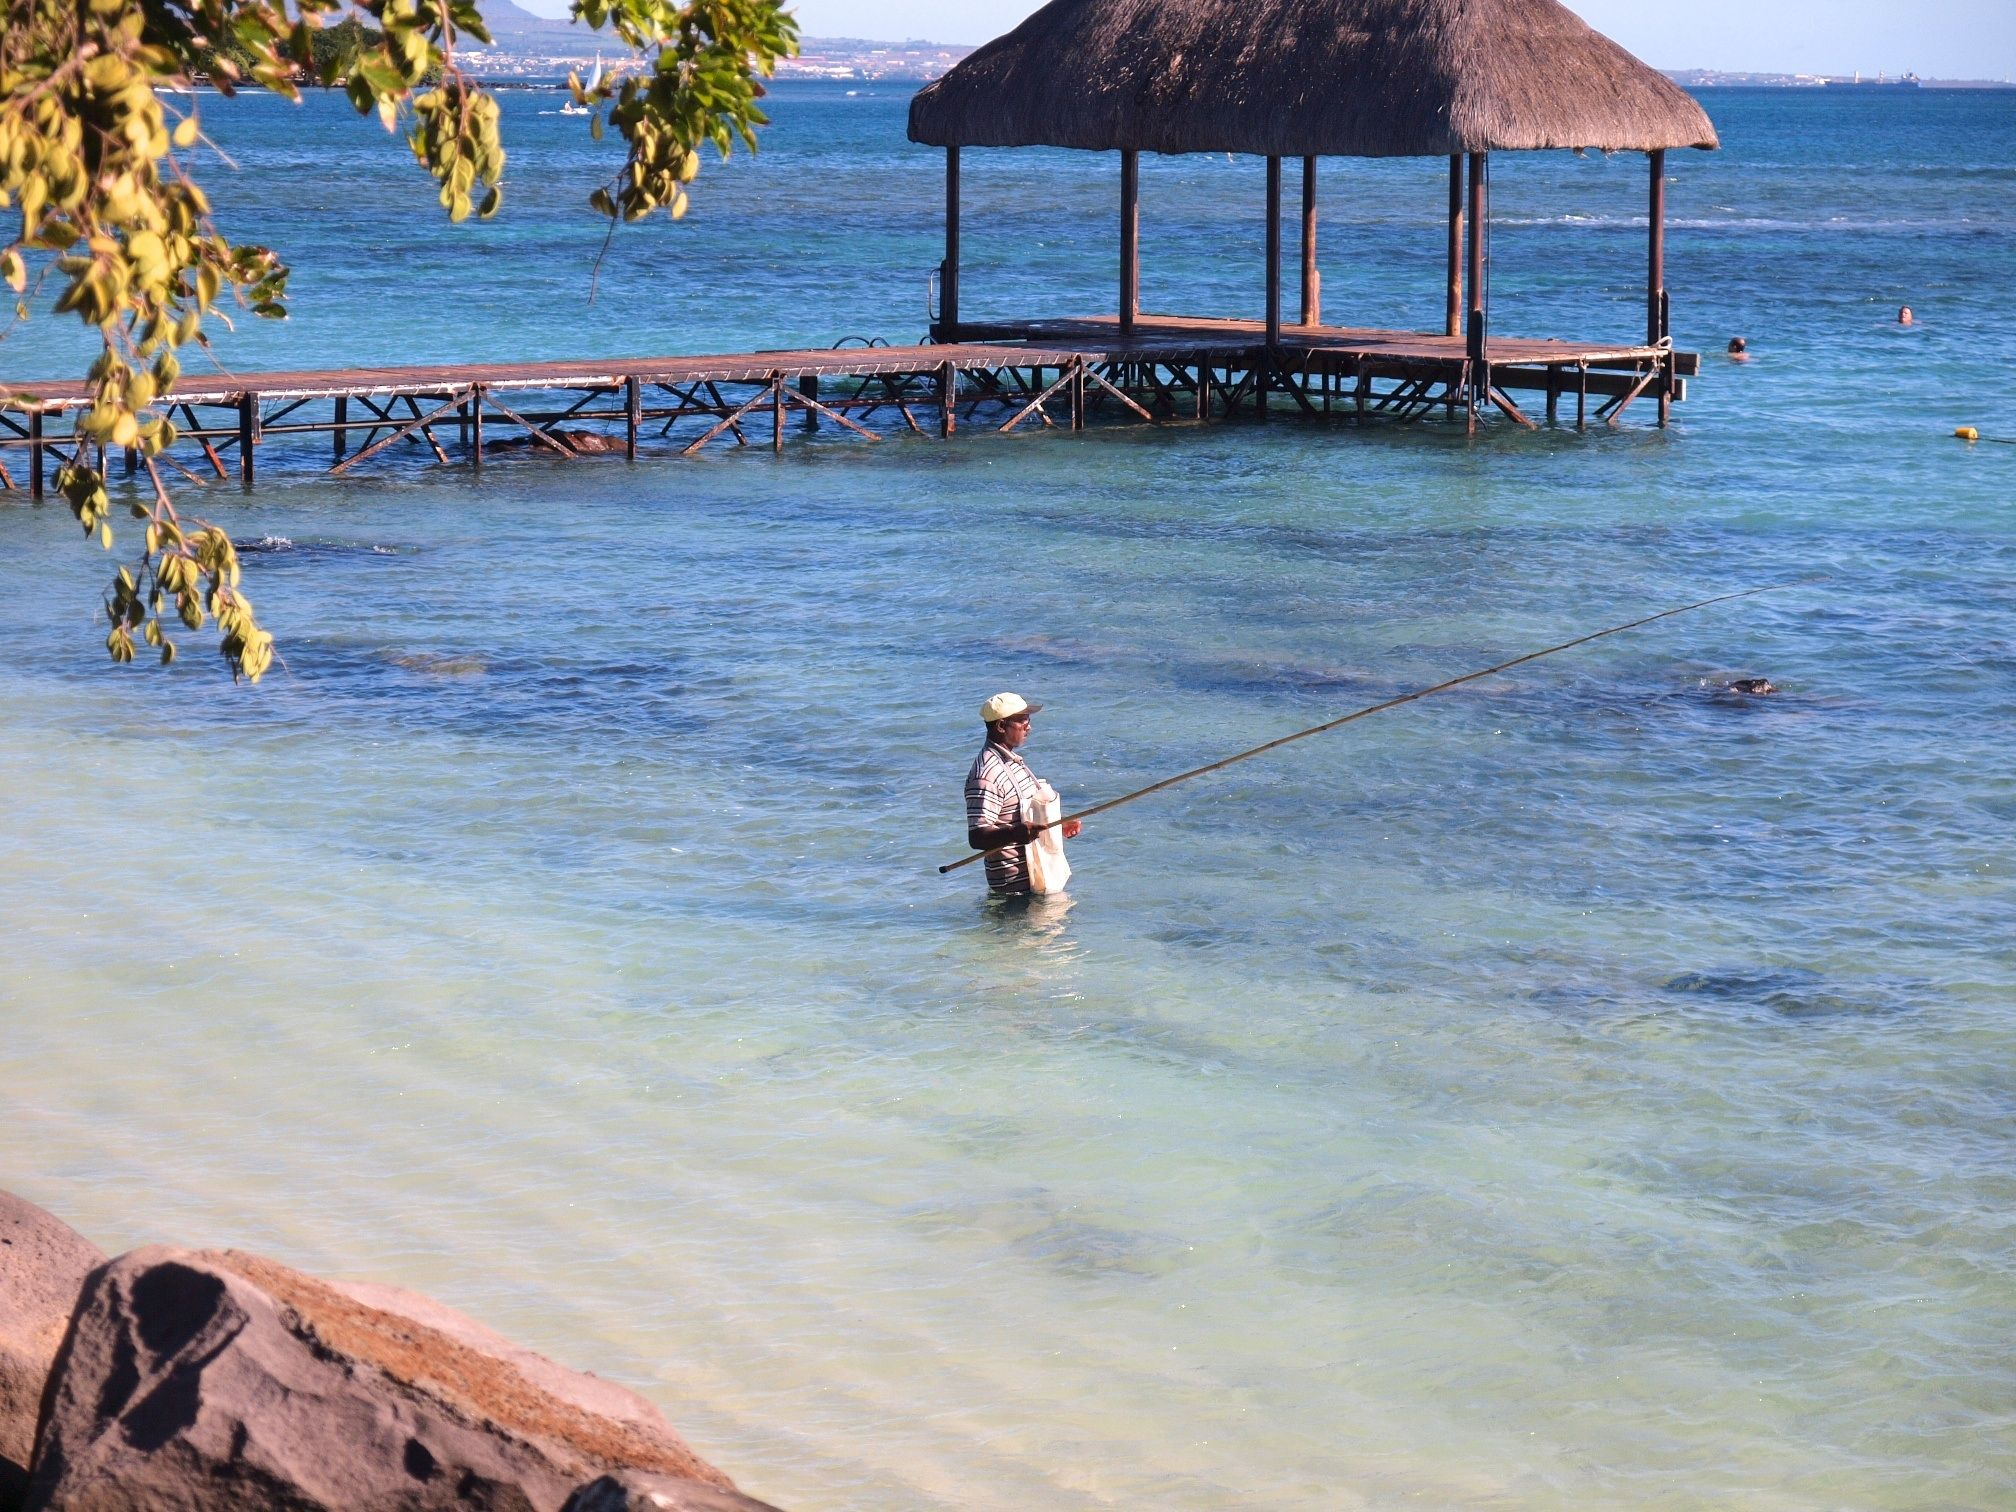 Mauritius Oberoi view from the pier